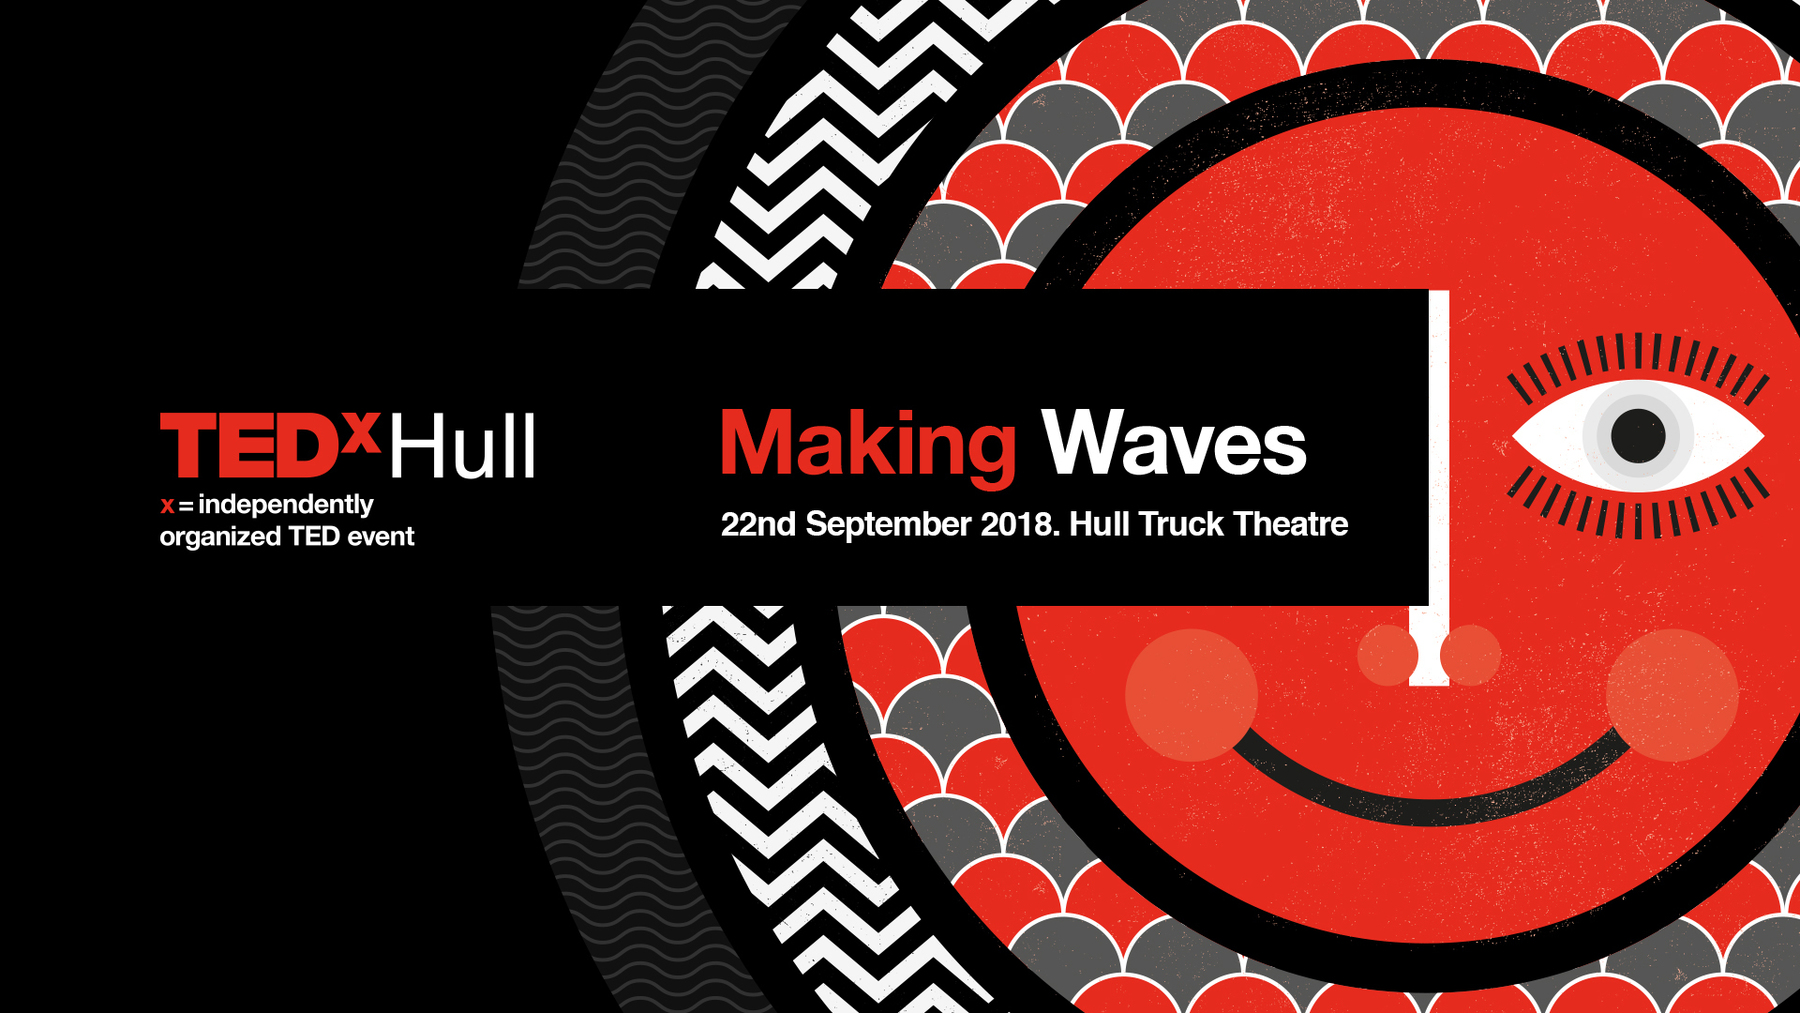 Tedxhull 2018 Set For An Exciting Day Of Insights